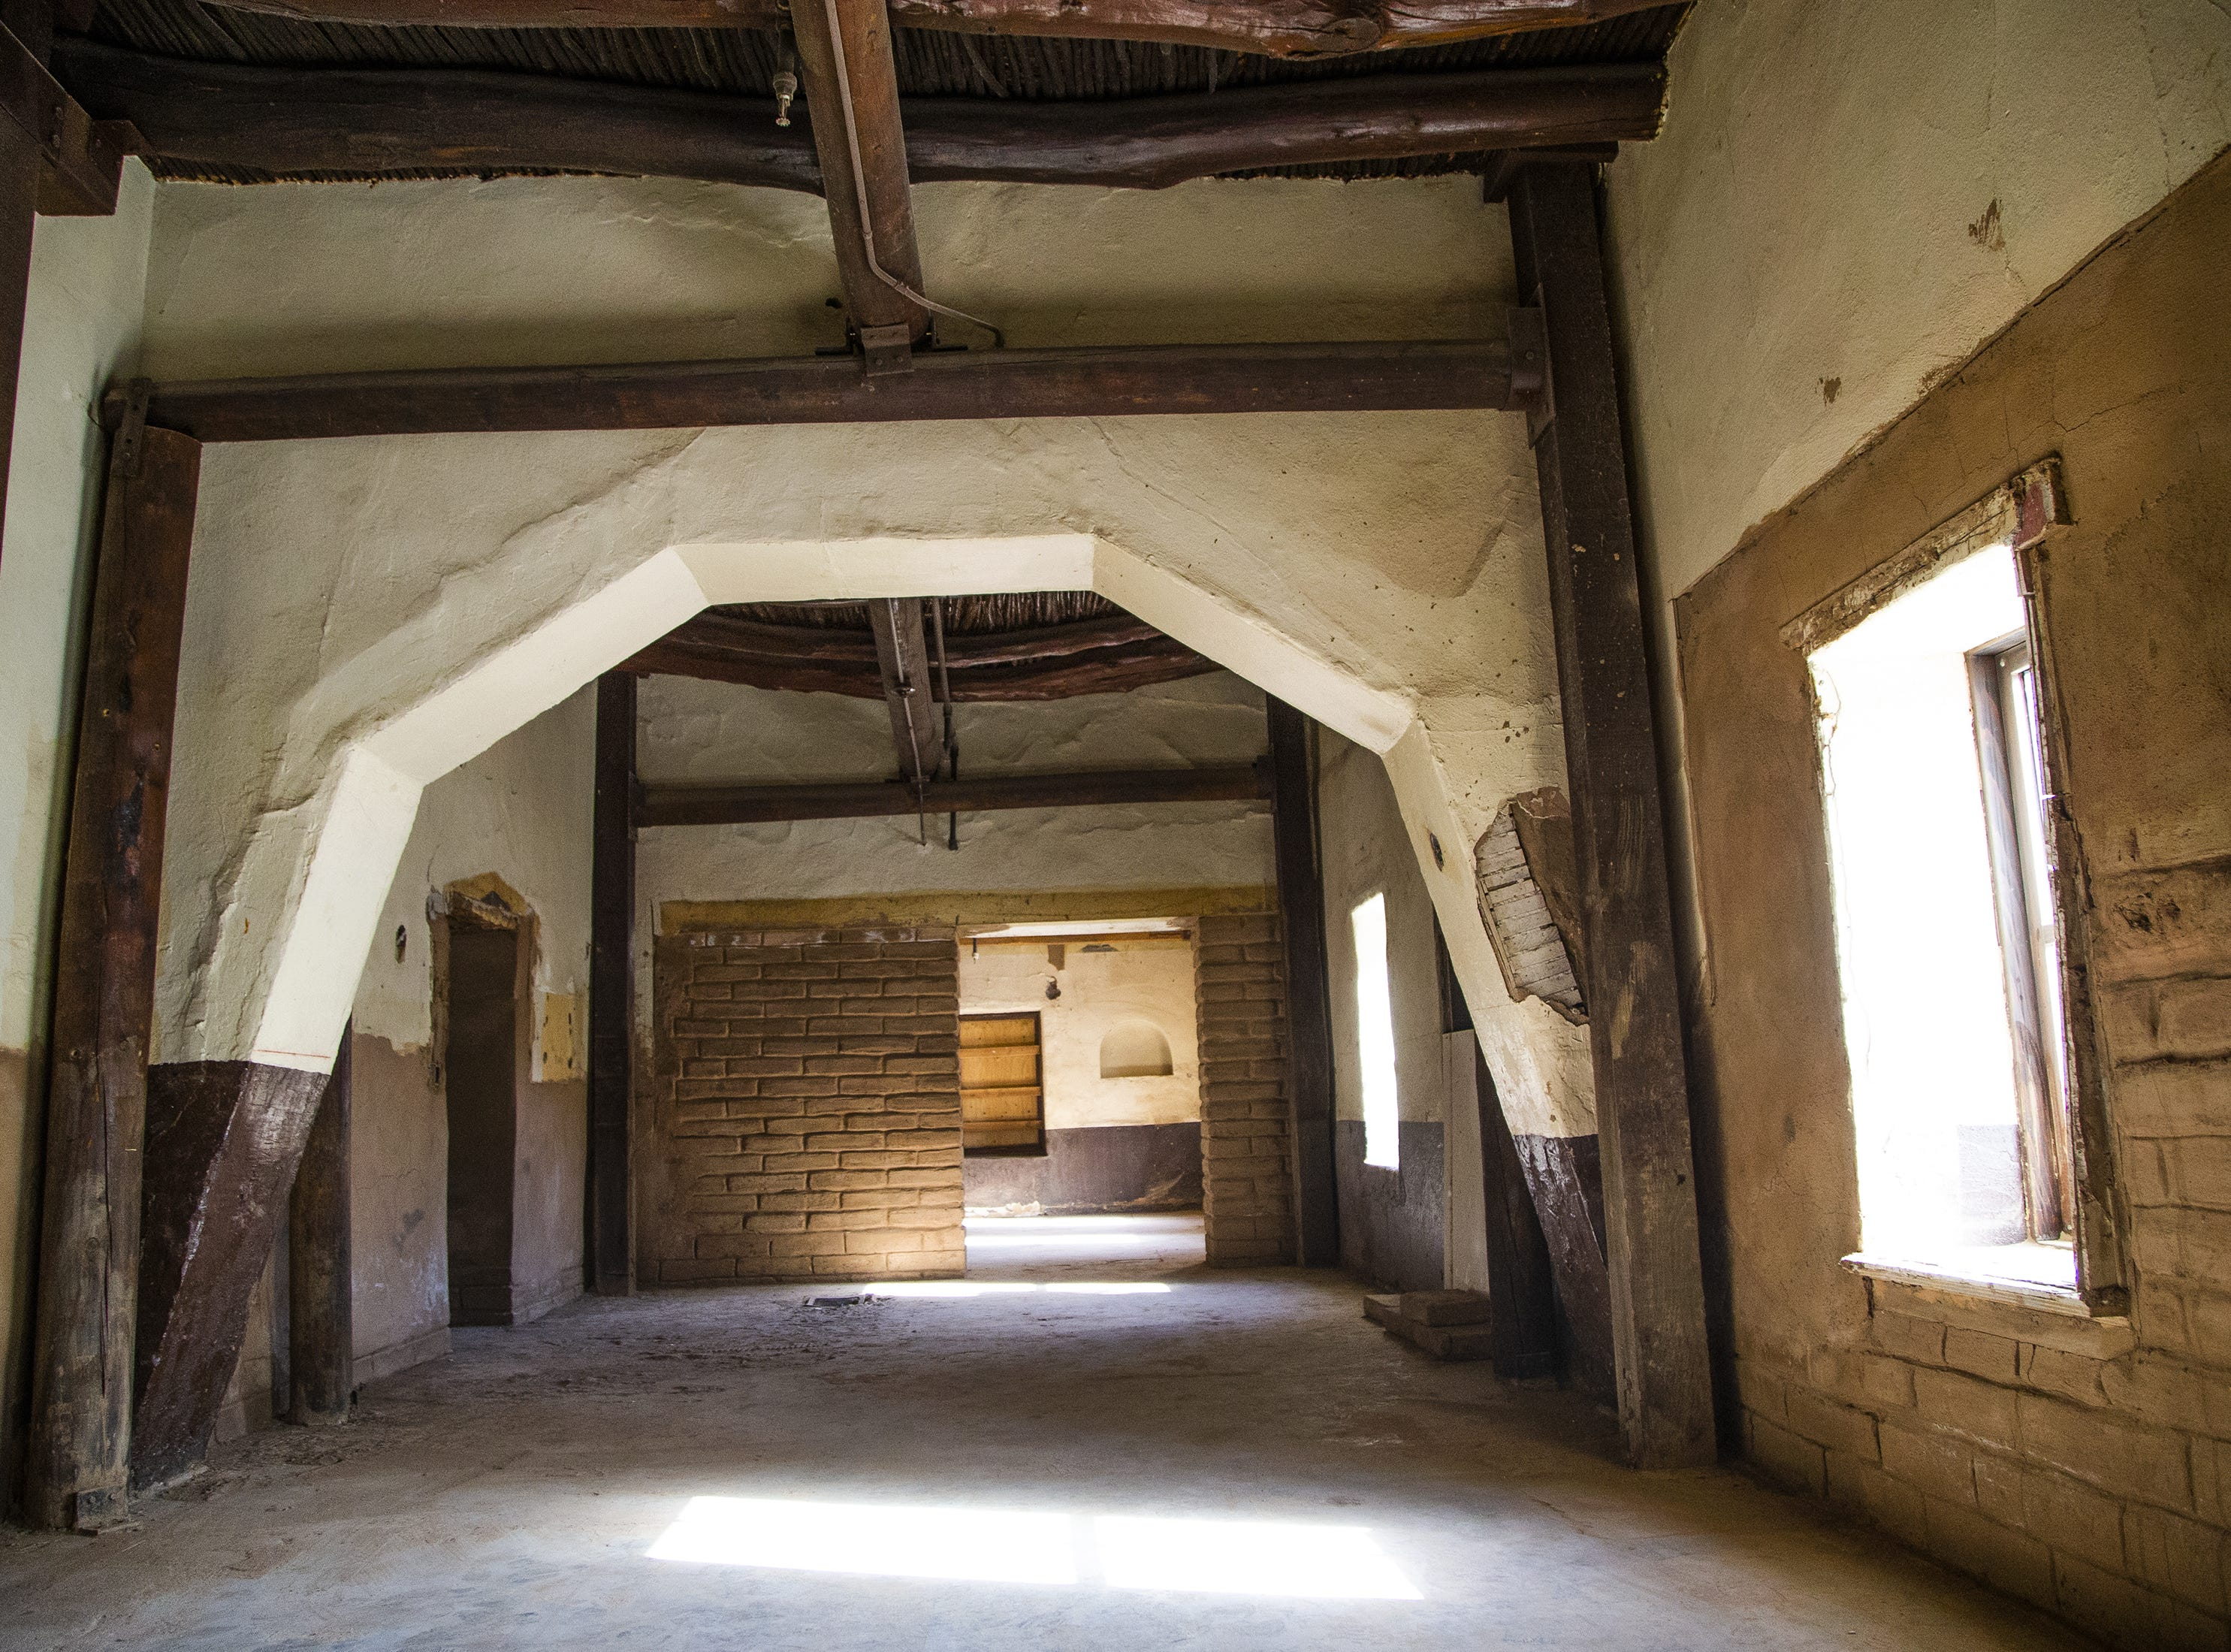 This is an original room with a 1924 remodel inside the old Monti's La Casa Vieja on Mill Avenue in Tempe on March 21, 2019.   The parts of the building that are original, dating back to the late 1800s,  are being retained. Only add-ons and additions made in later years are being torn down.